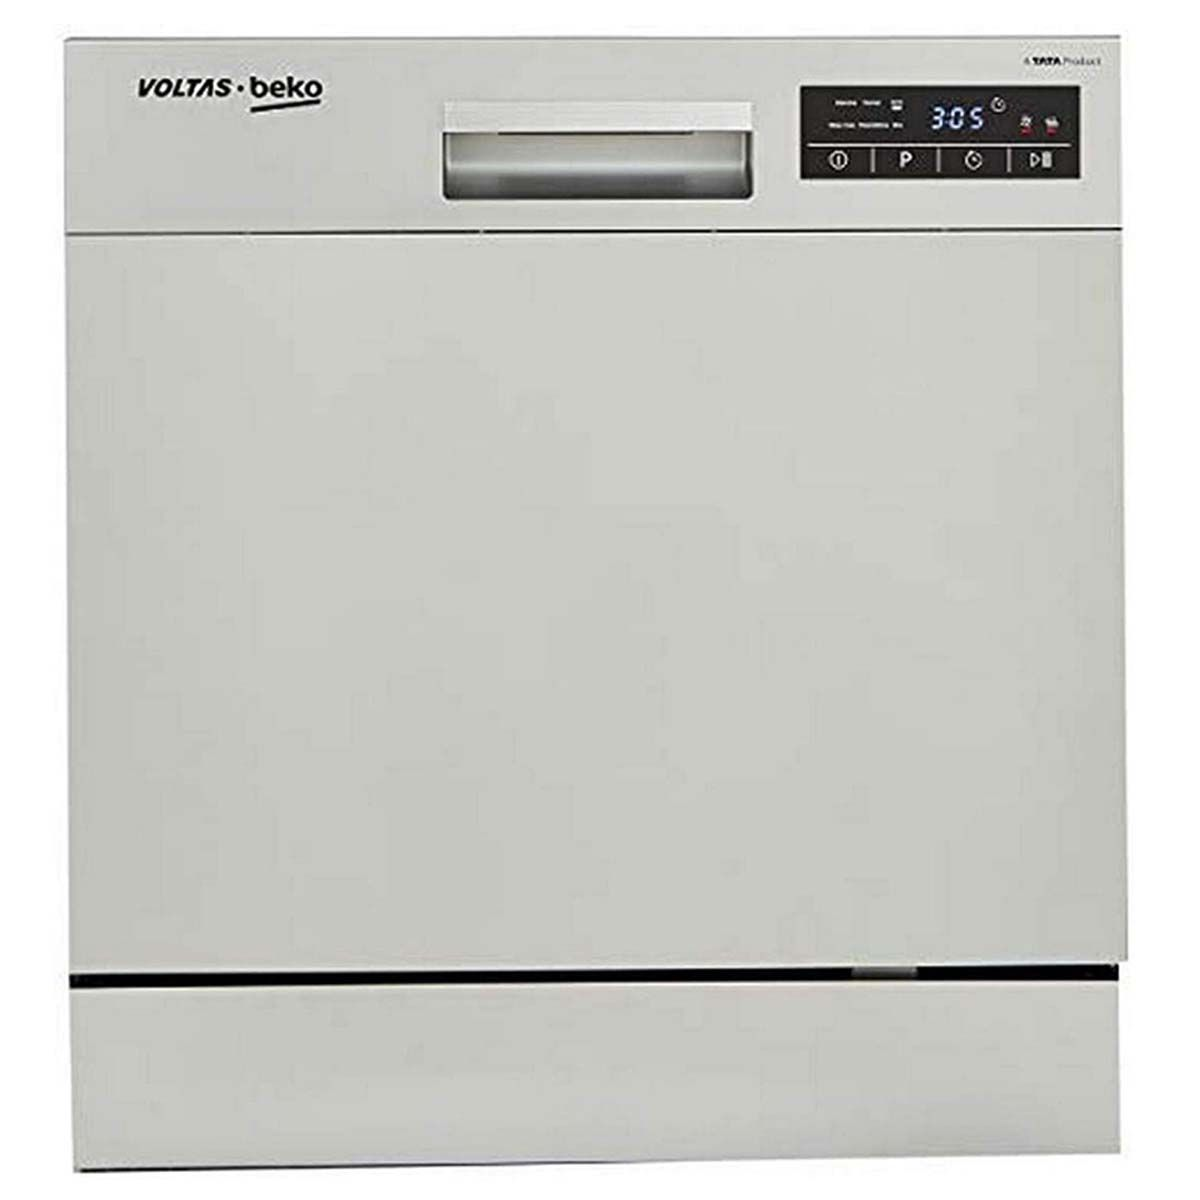 Voltas Beko 8 Place Table மேலே Dishwasher (DT8S, Silver)